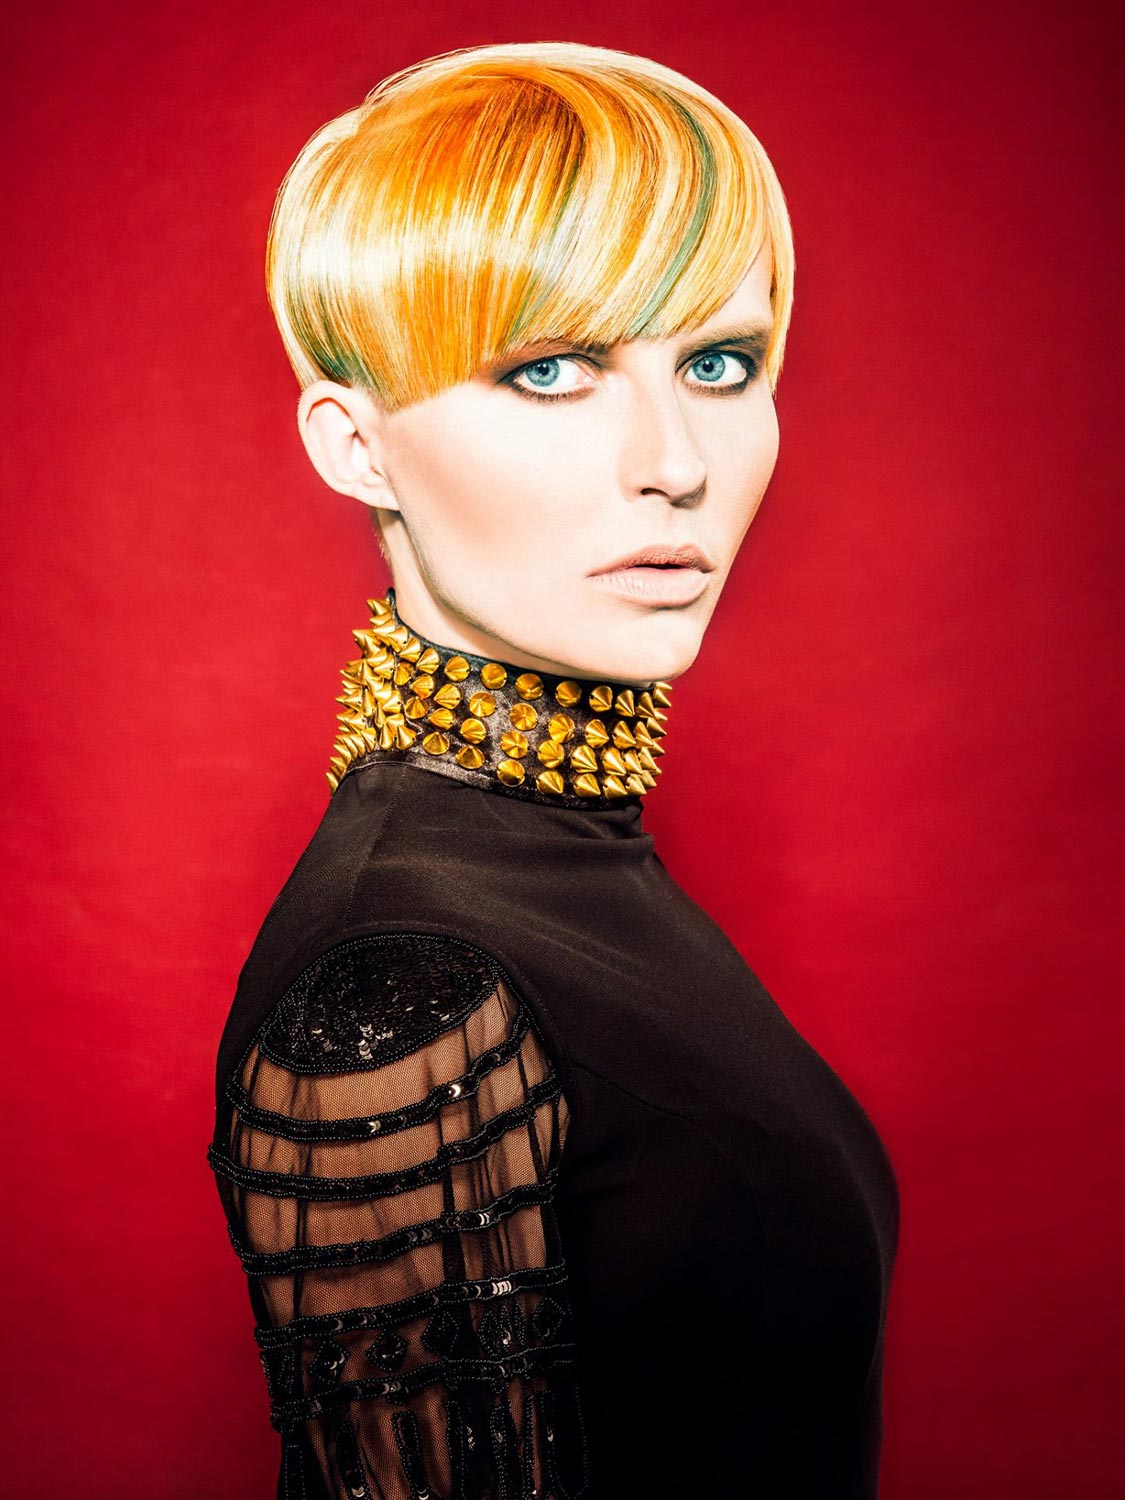 Michal Macálka, Vlasový ateliér Dana Jirecová, České Budějovice – nominace v soutěžní kategorii Color Zoom Collection 2015 GLOBAL NEW TALENT COLORIST.